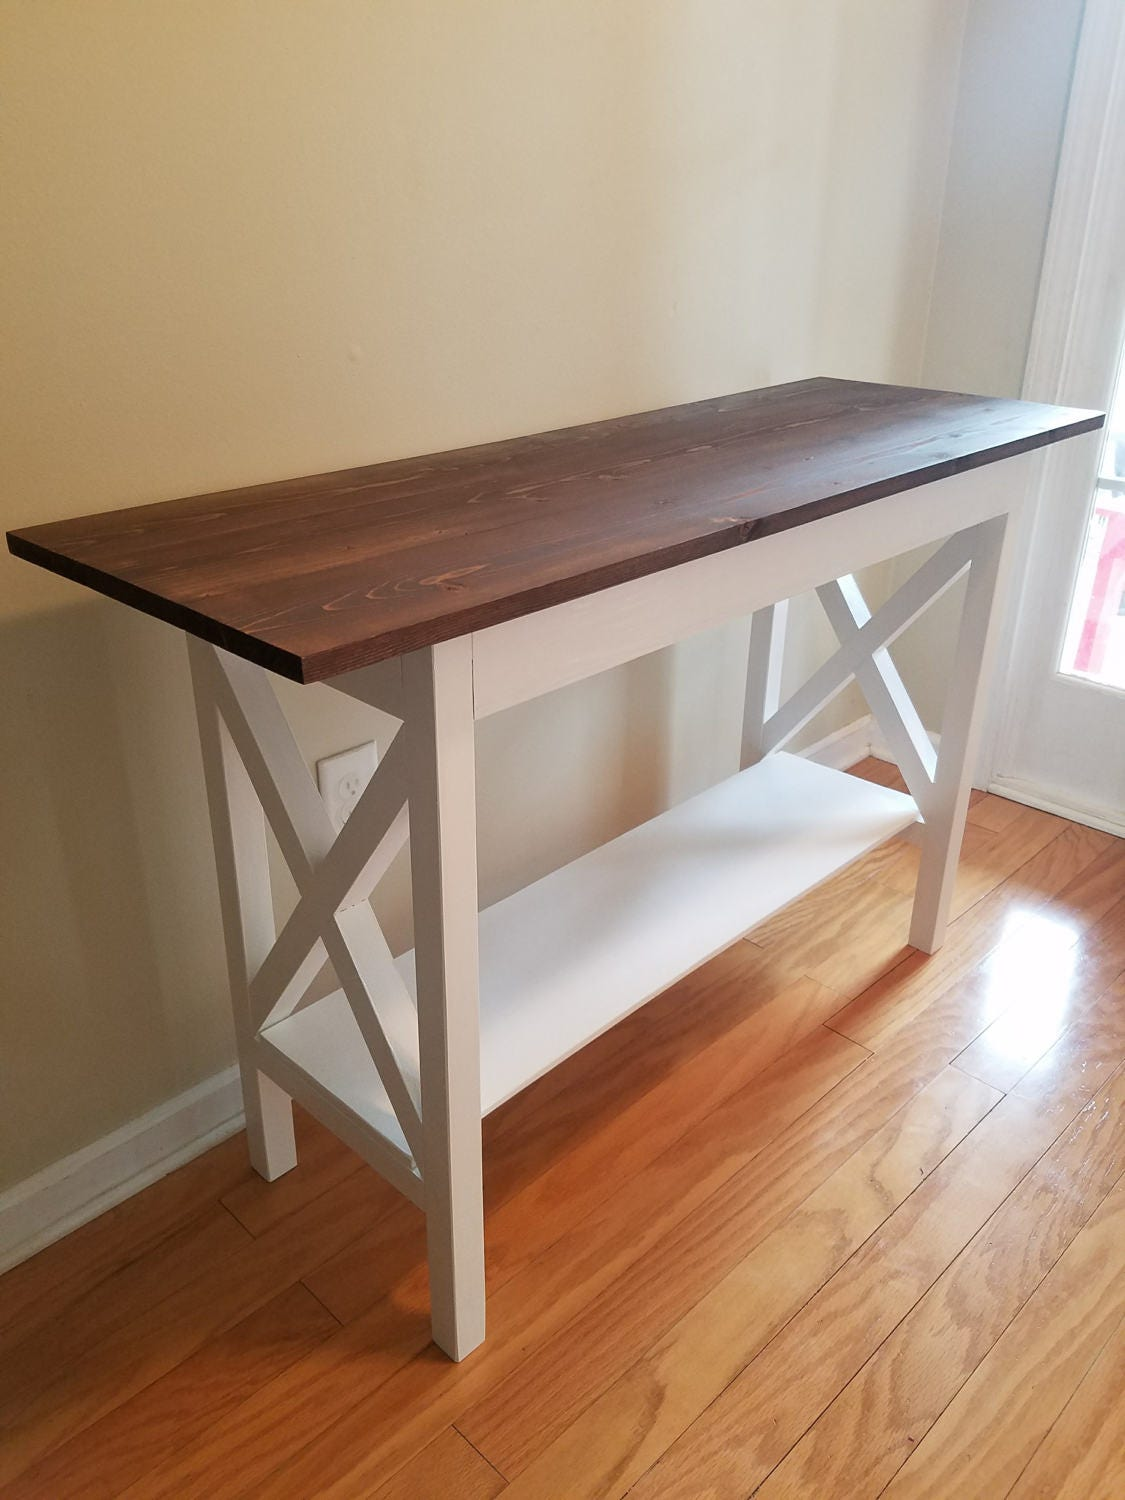 Traditional Foyer Table : Farmhouse traditional entryway table with bottom shelf